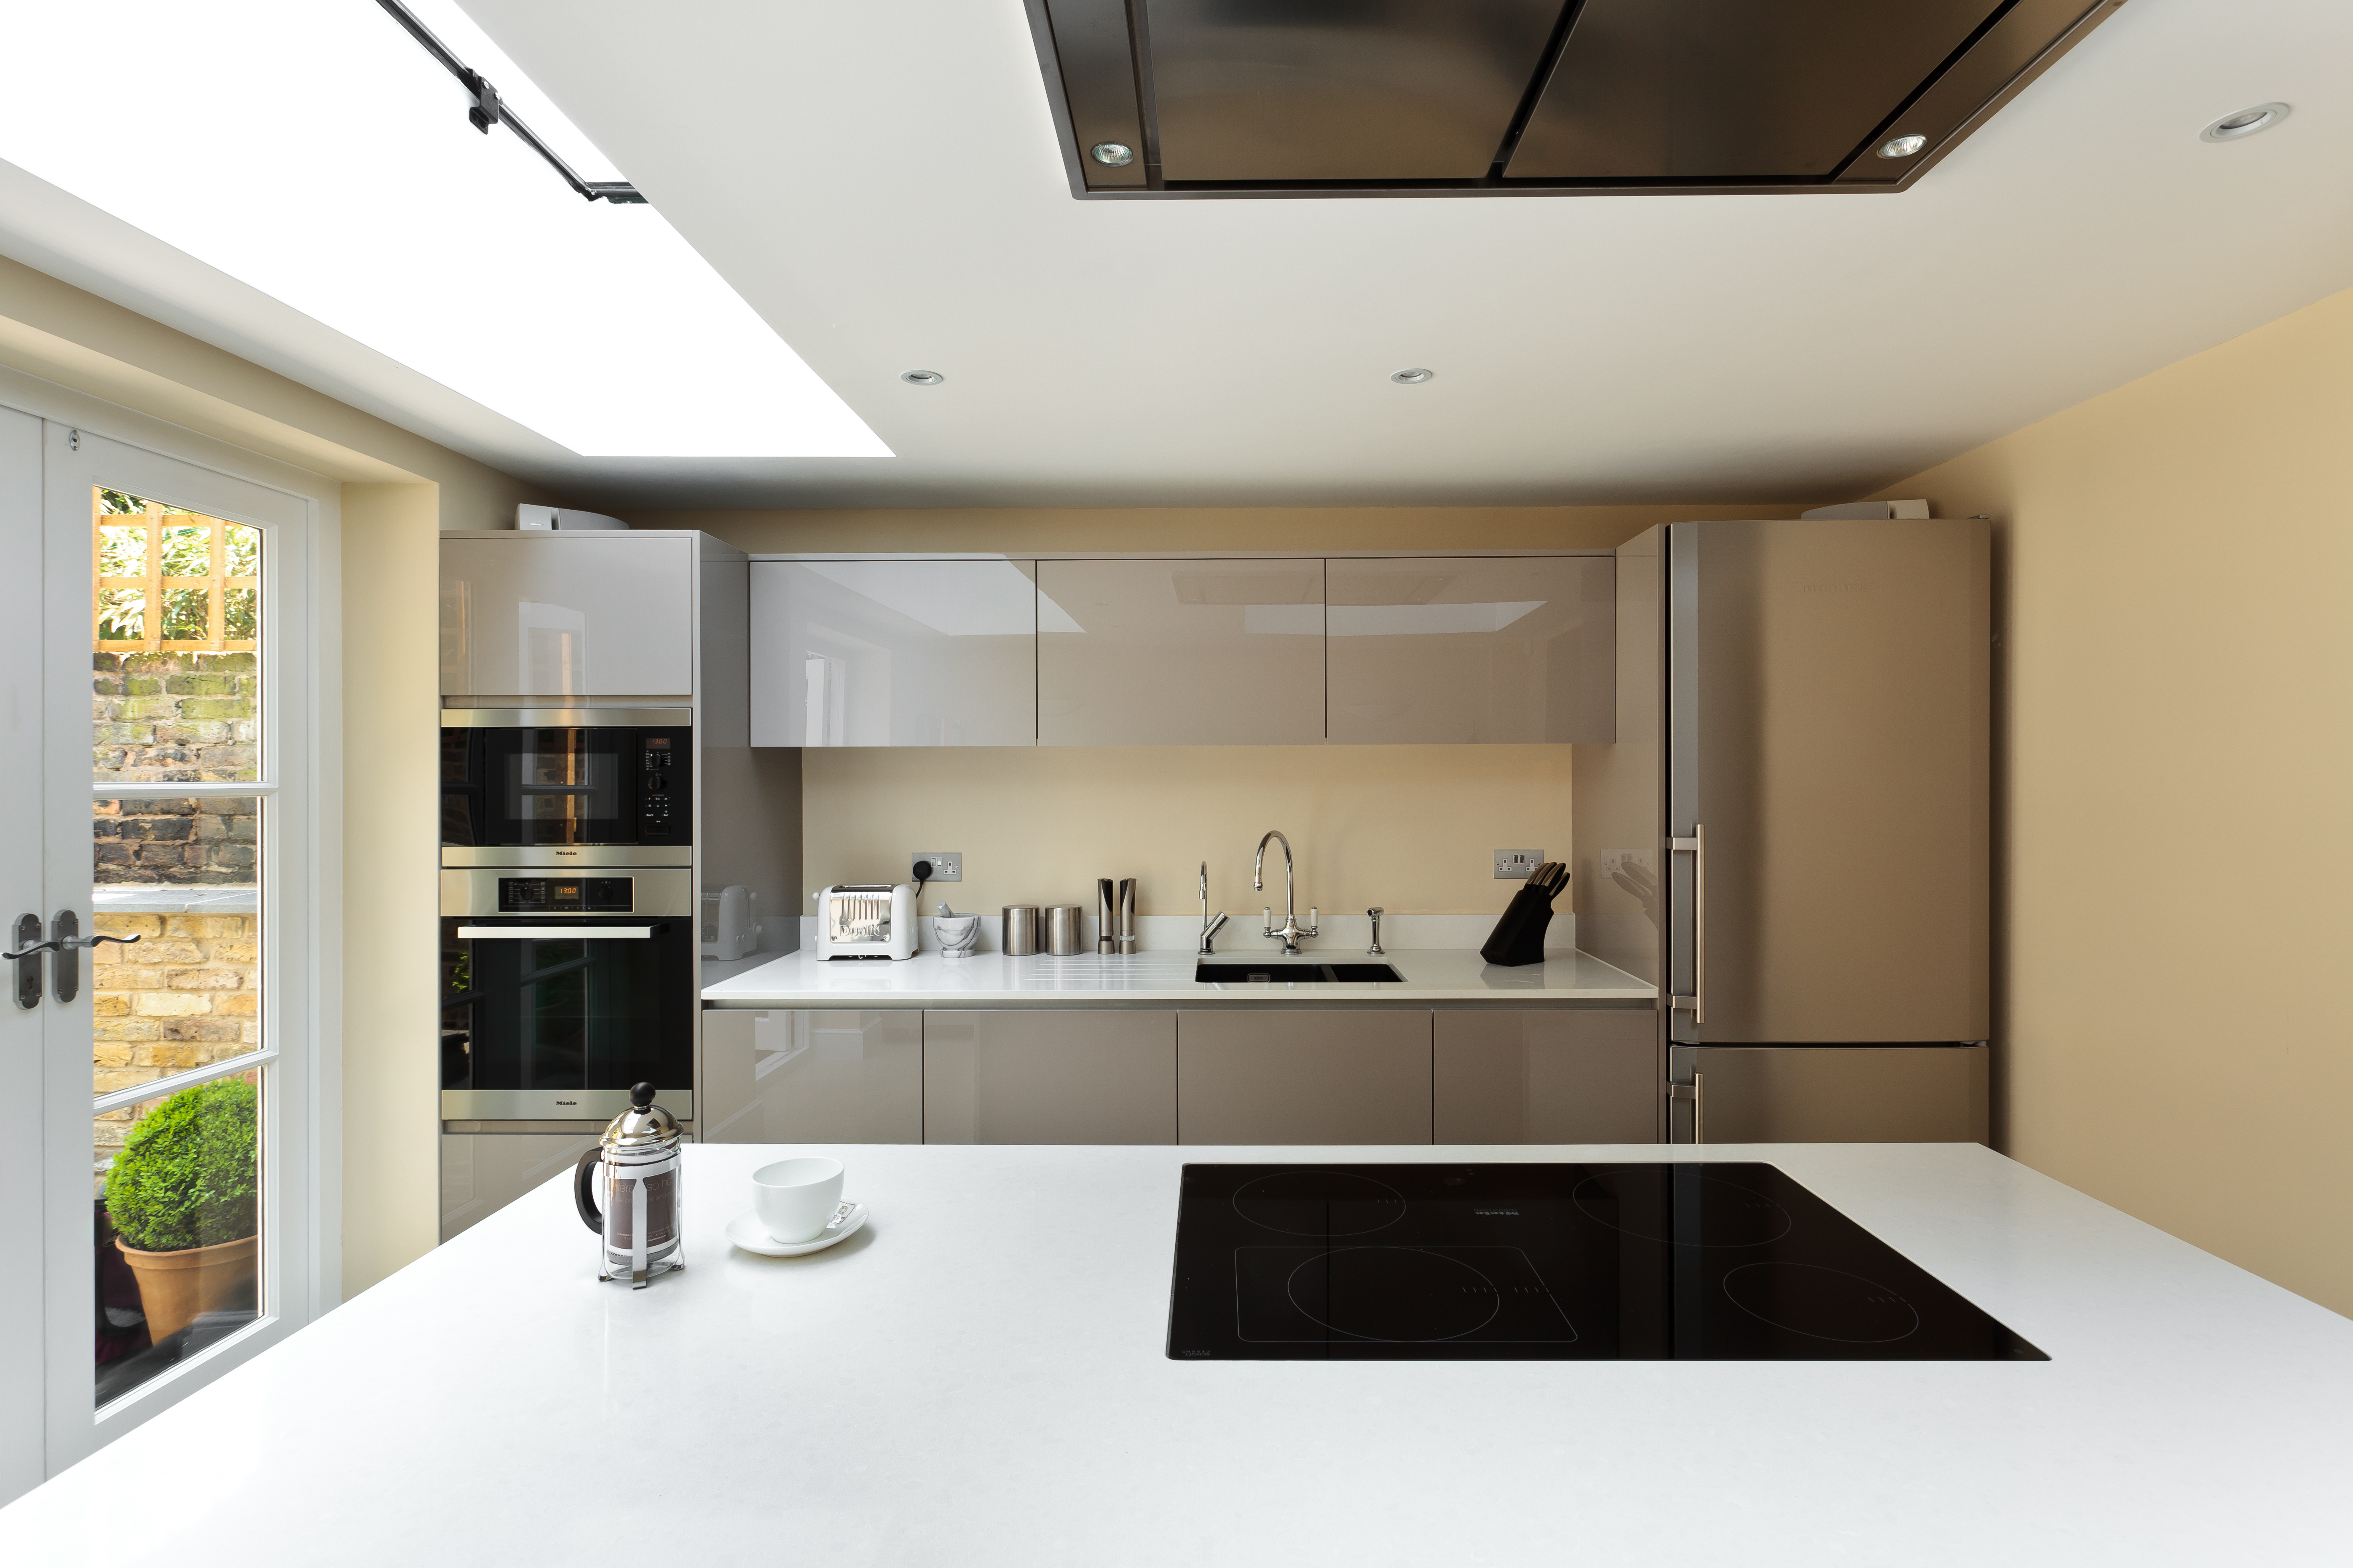 Clutter free family kitchen with large island